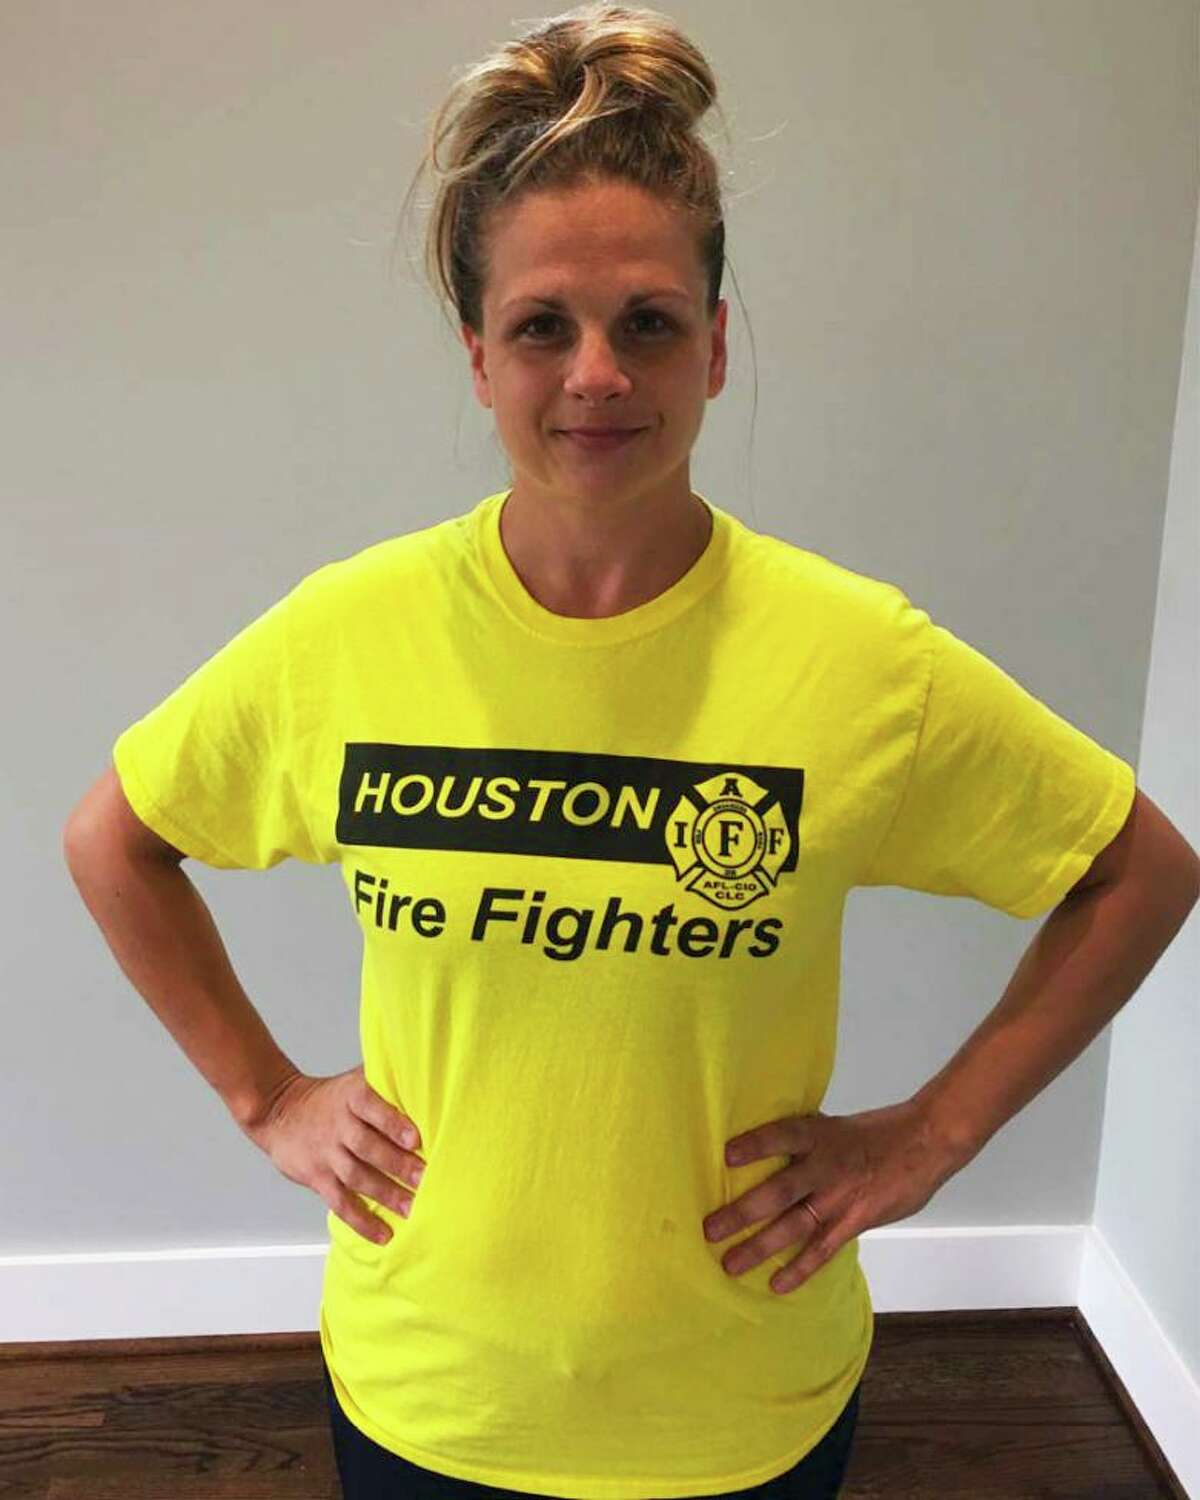 Jillian Ostrewich, who is married to a Houston firefighter, is pictured wearing the T-shirt she wore to a Harris County polling place for early voting in October 2018, when a pay parity measure for firefighters was on the ballot. According to court documents, election officials told her she could not cast her vote with the logo showing, so she turned her T-shirt inside out and was able to proceed. Credit: Pacific Legal Foundation.